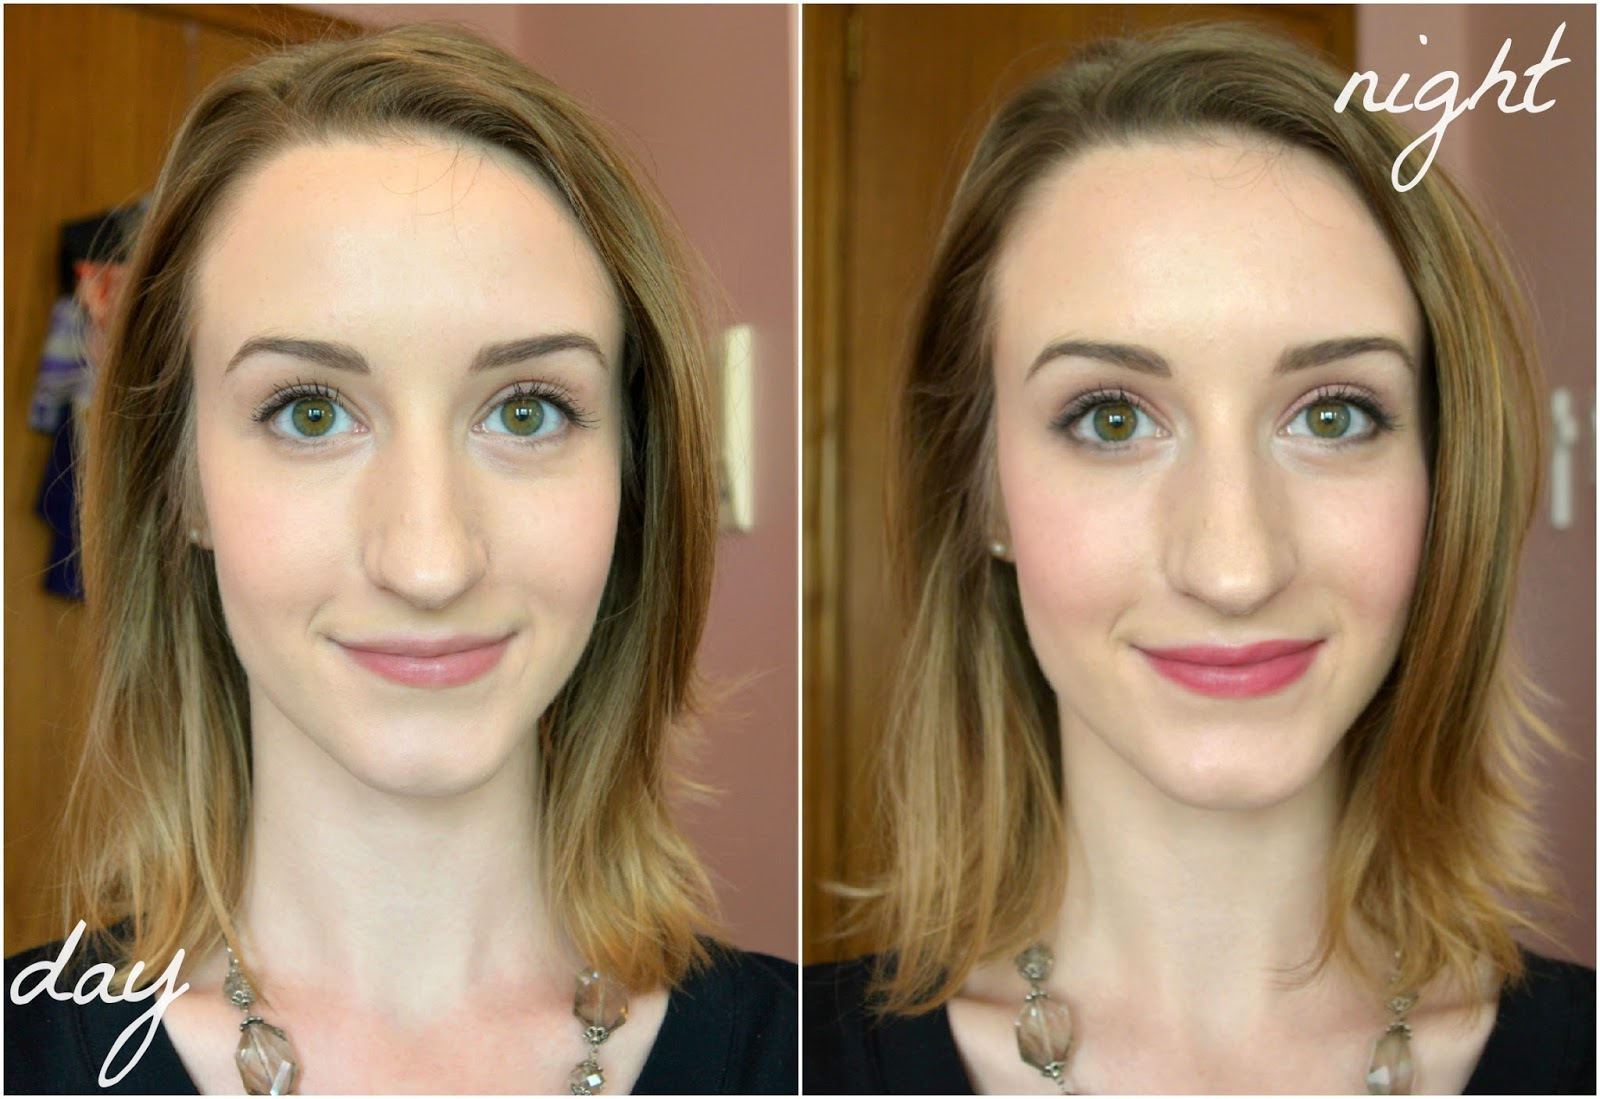 Day To Night Glam Party Makeup Transformation - YouTube